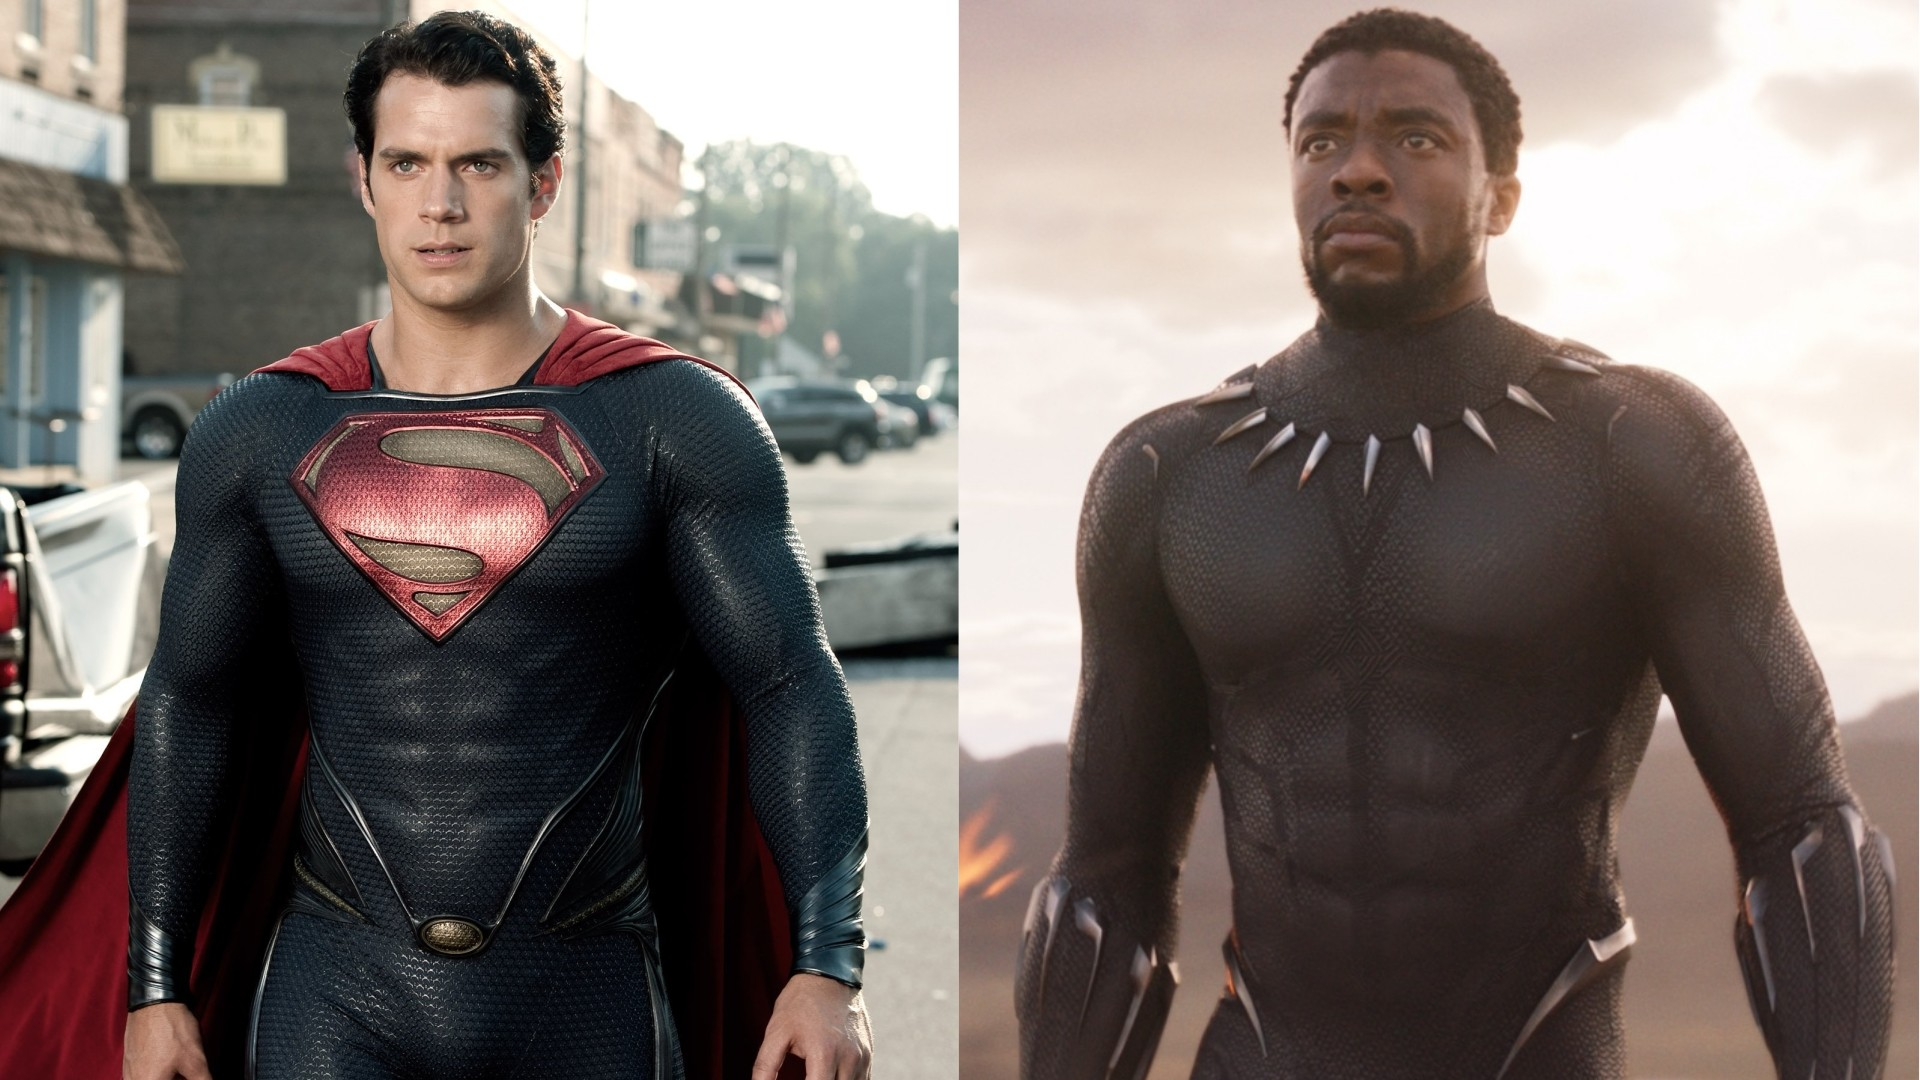 left-henry-cavill-in-2013s-man-of-steel-designed-by-michael-wilkinson-right-chadwick-boseman